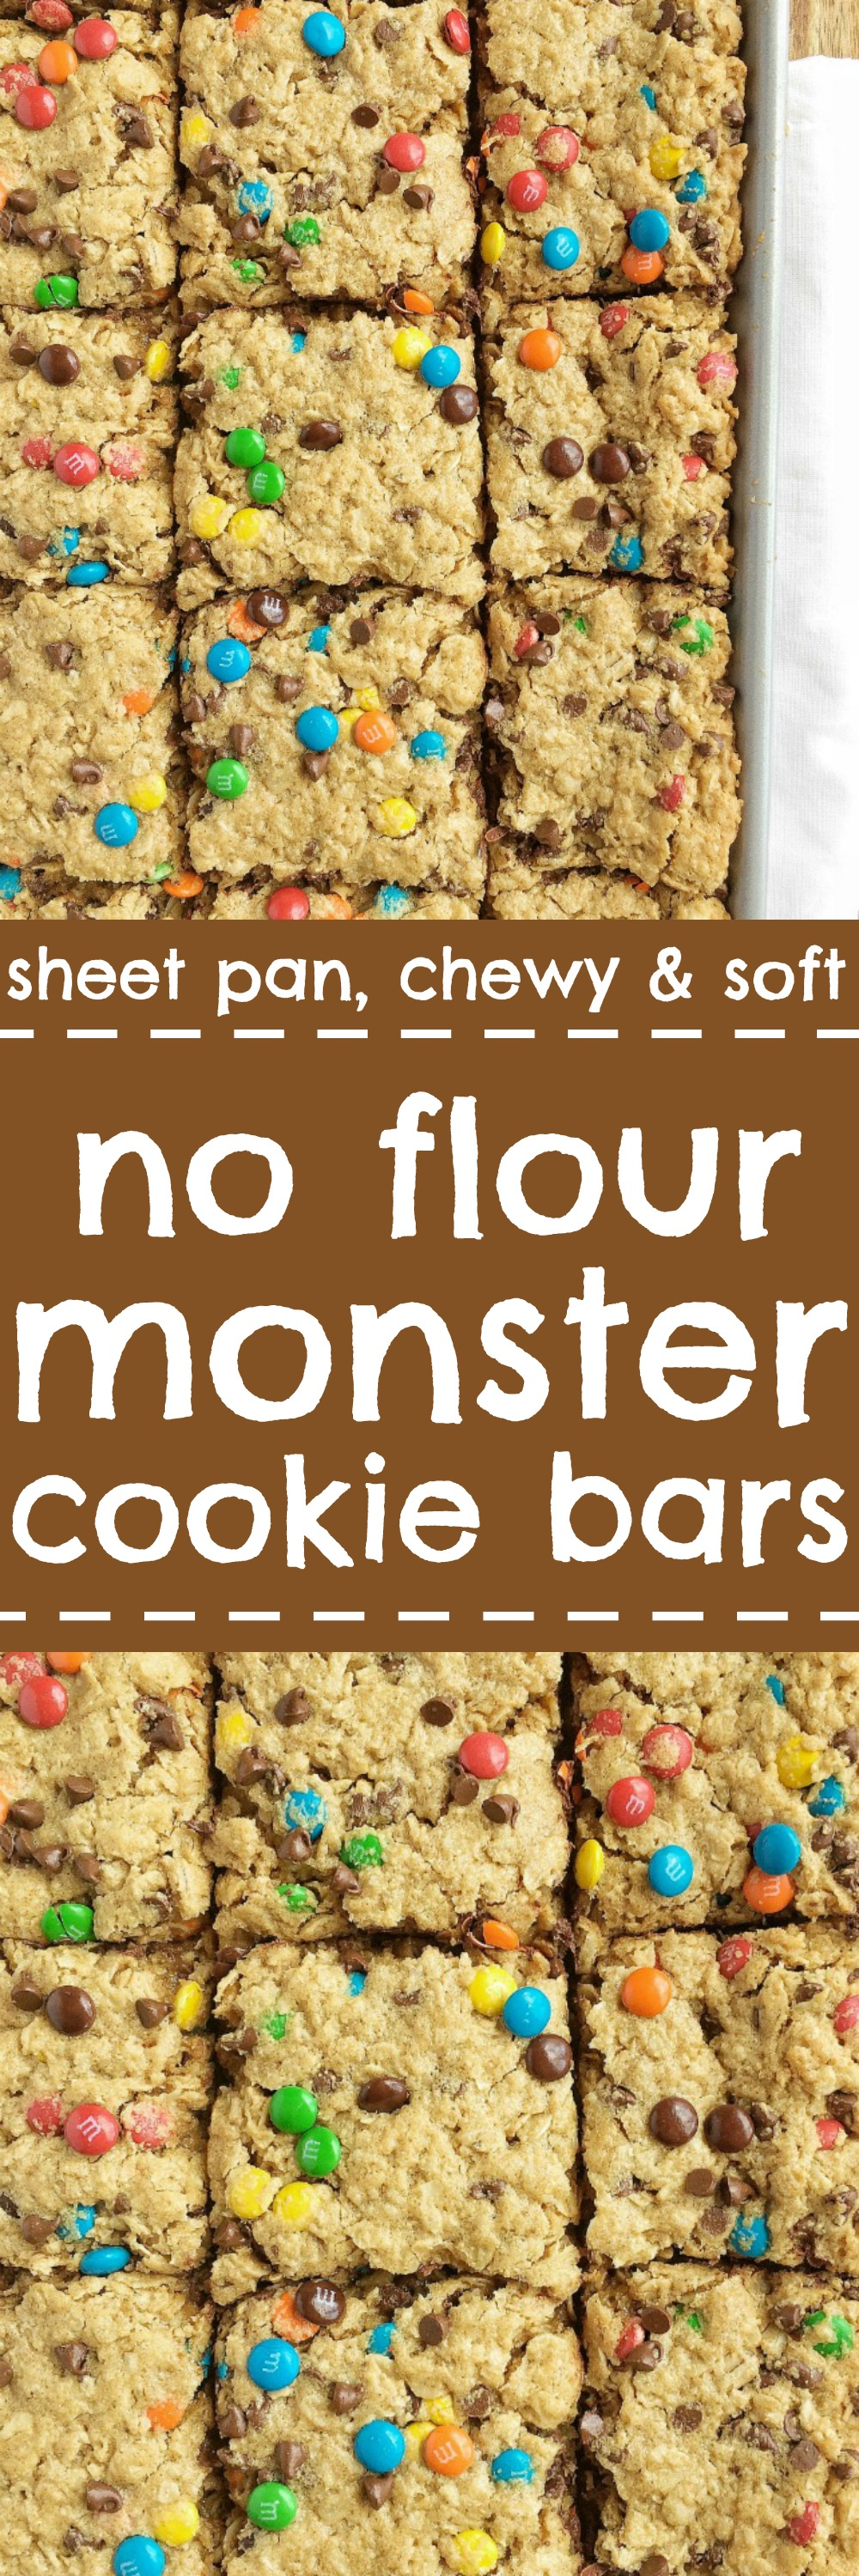 Monster cookie recipes without brown sugar